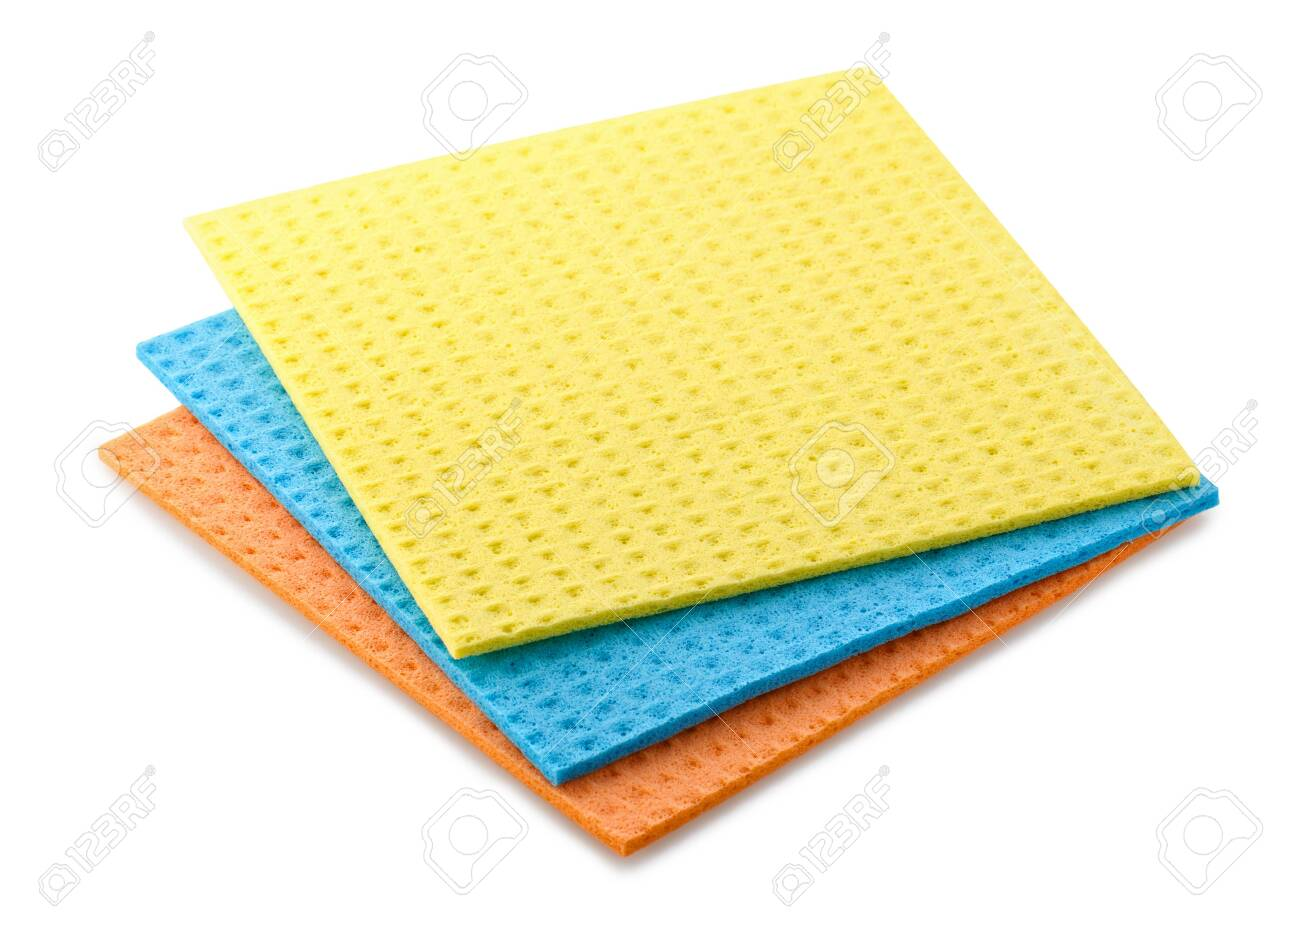 three rags sponges for washing dishes isolated on white background - 141391304